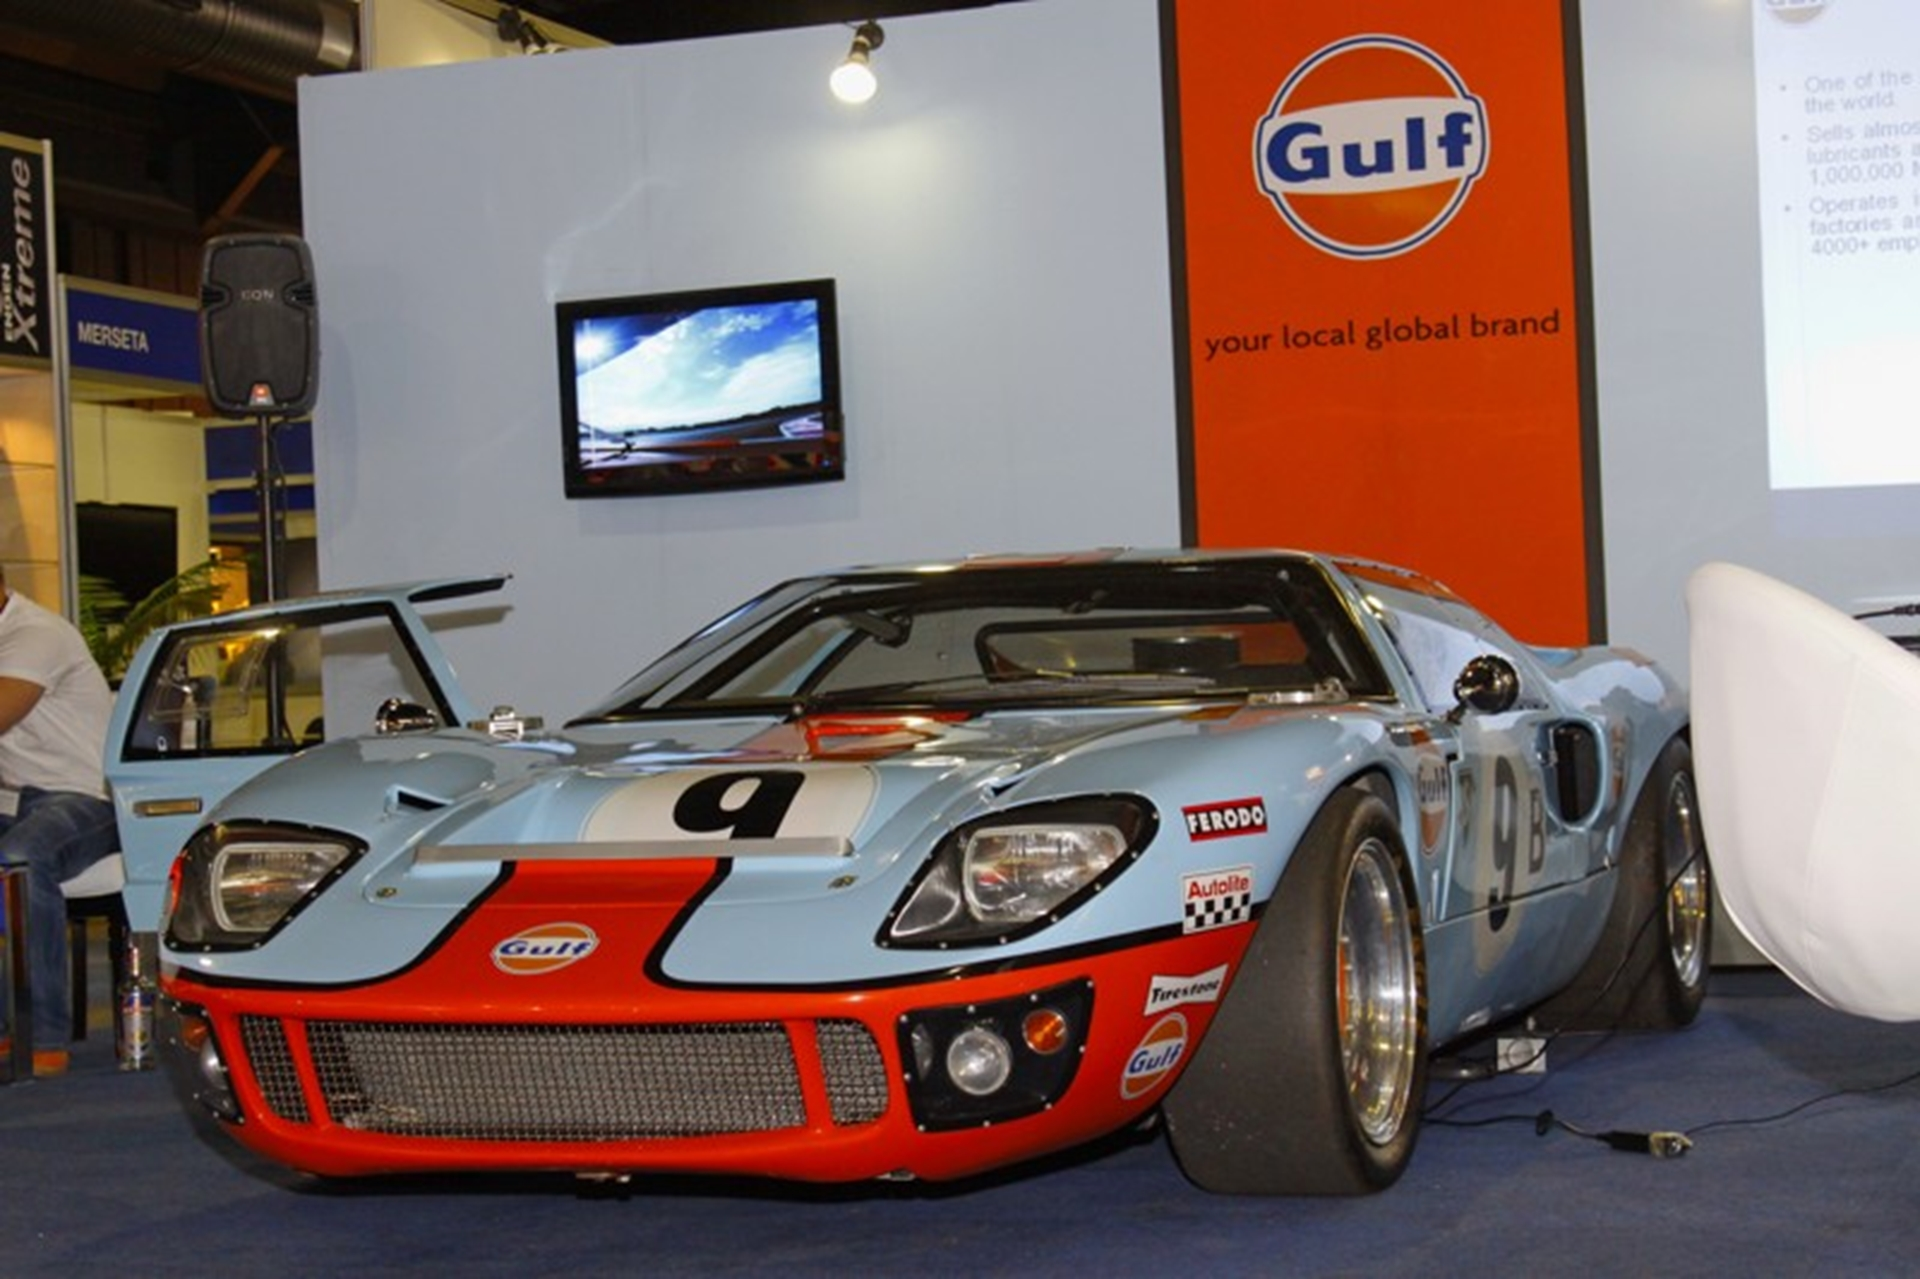 Gulf Oil South Africa Johannesburg International Show